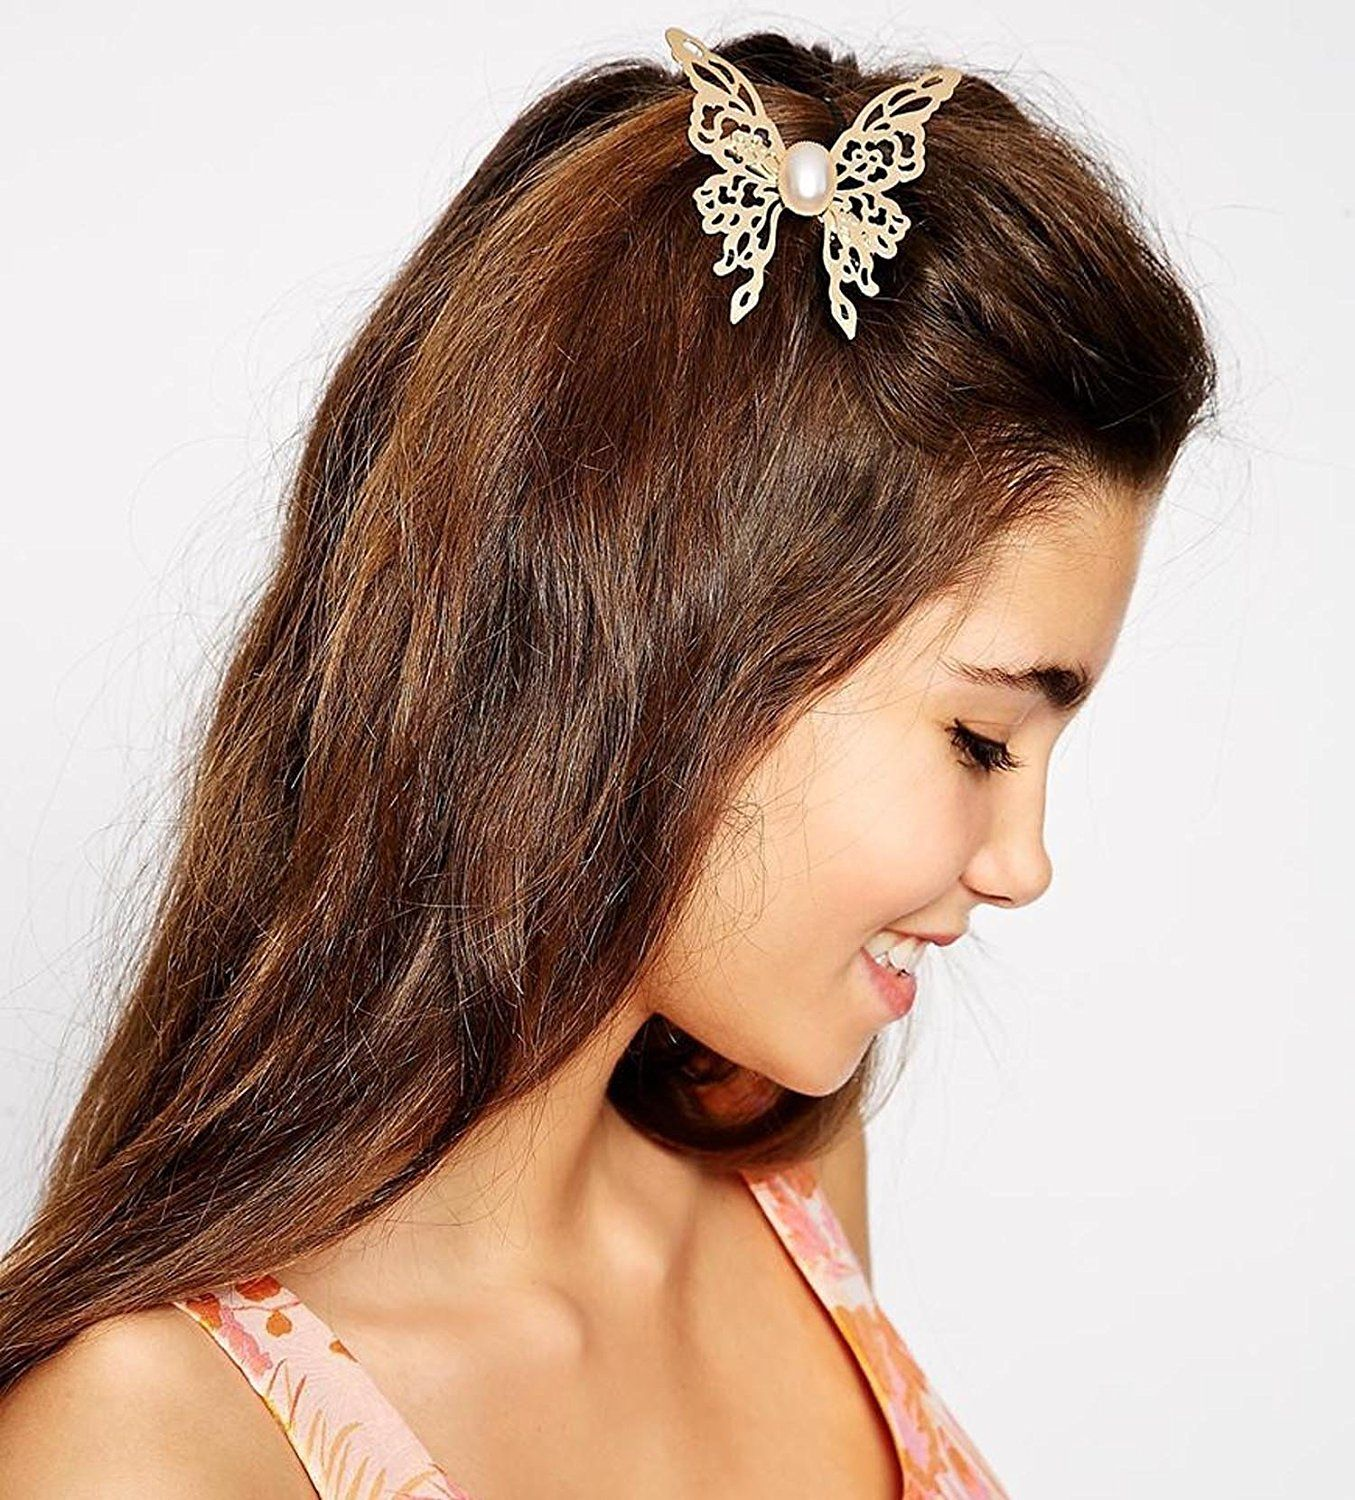 Unique Vintage Hair Accessories Double Chain With Leaf Comb Head New Headband LL